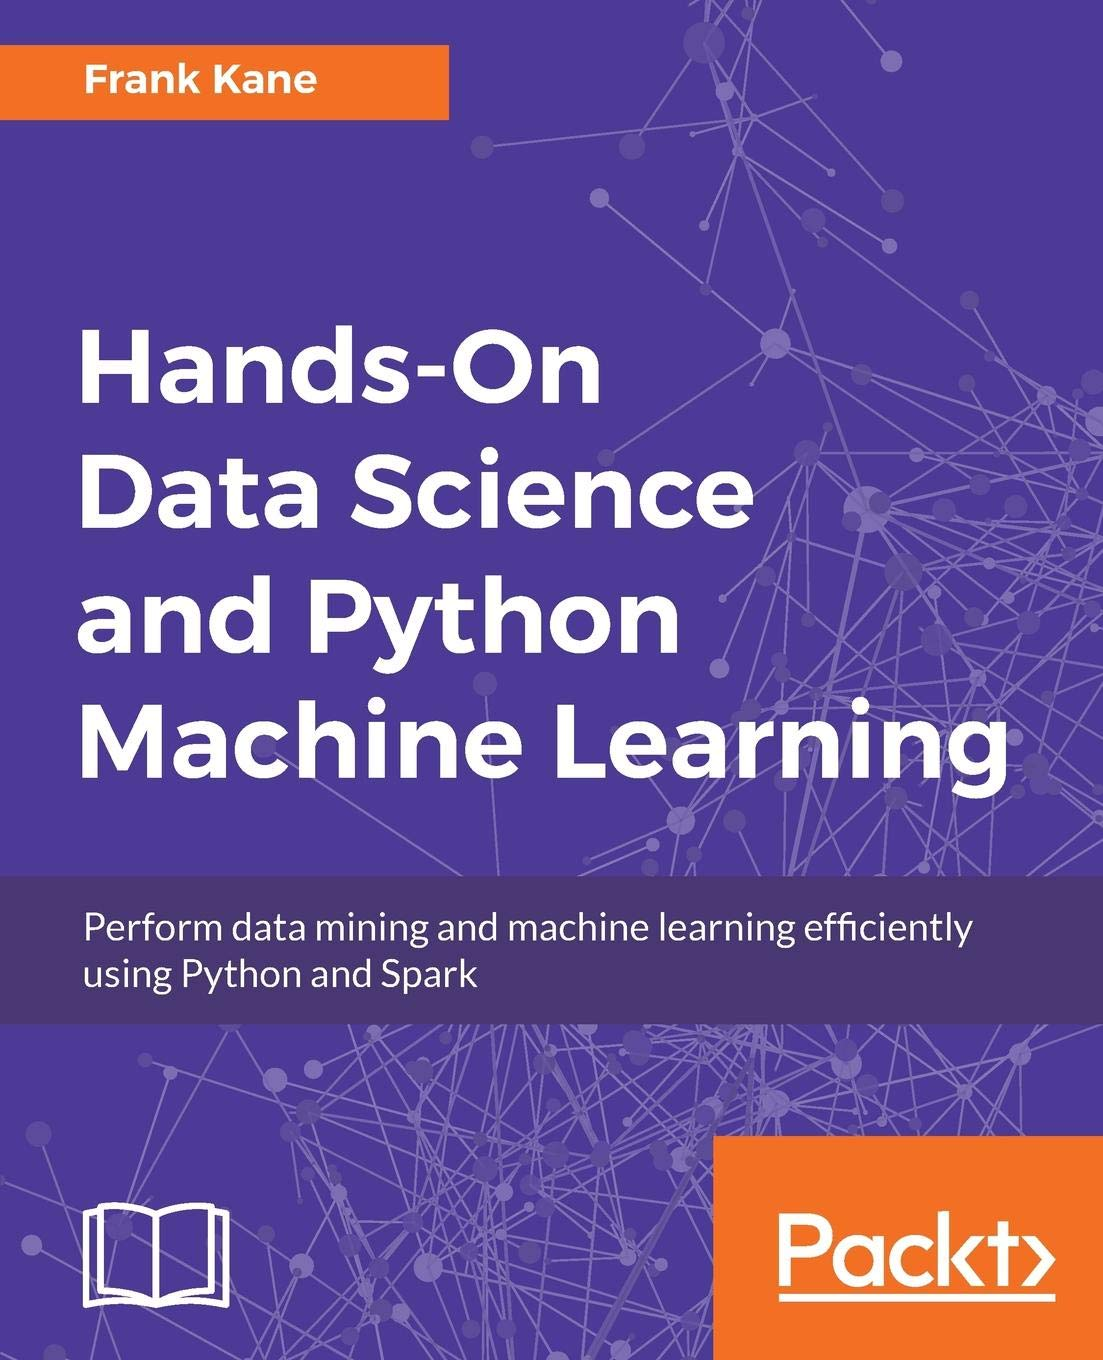 Hands-On Data Science and Python Machine Learning: Frank